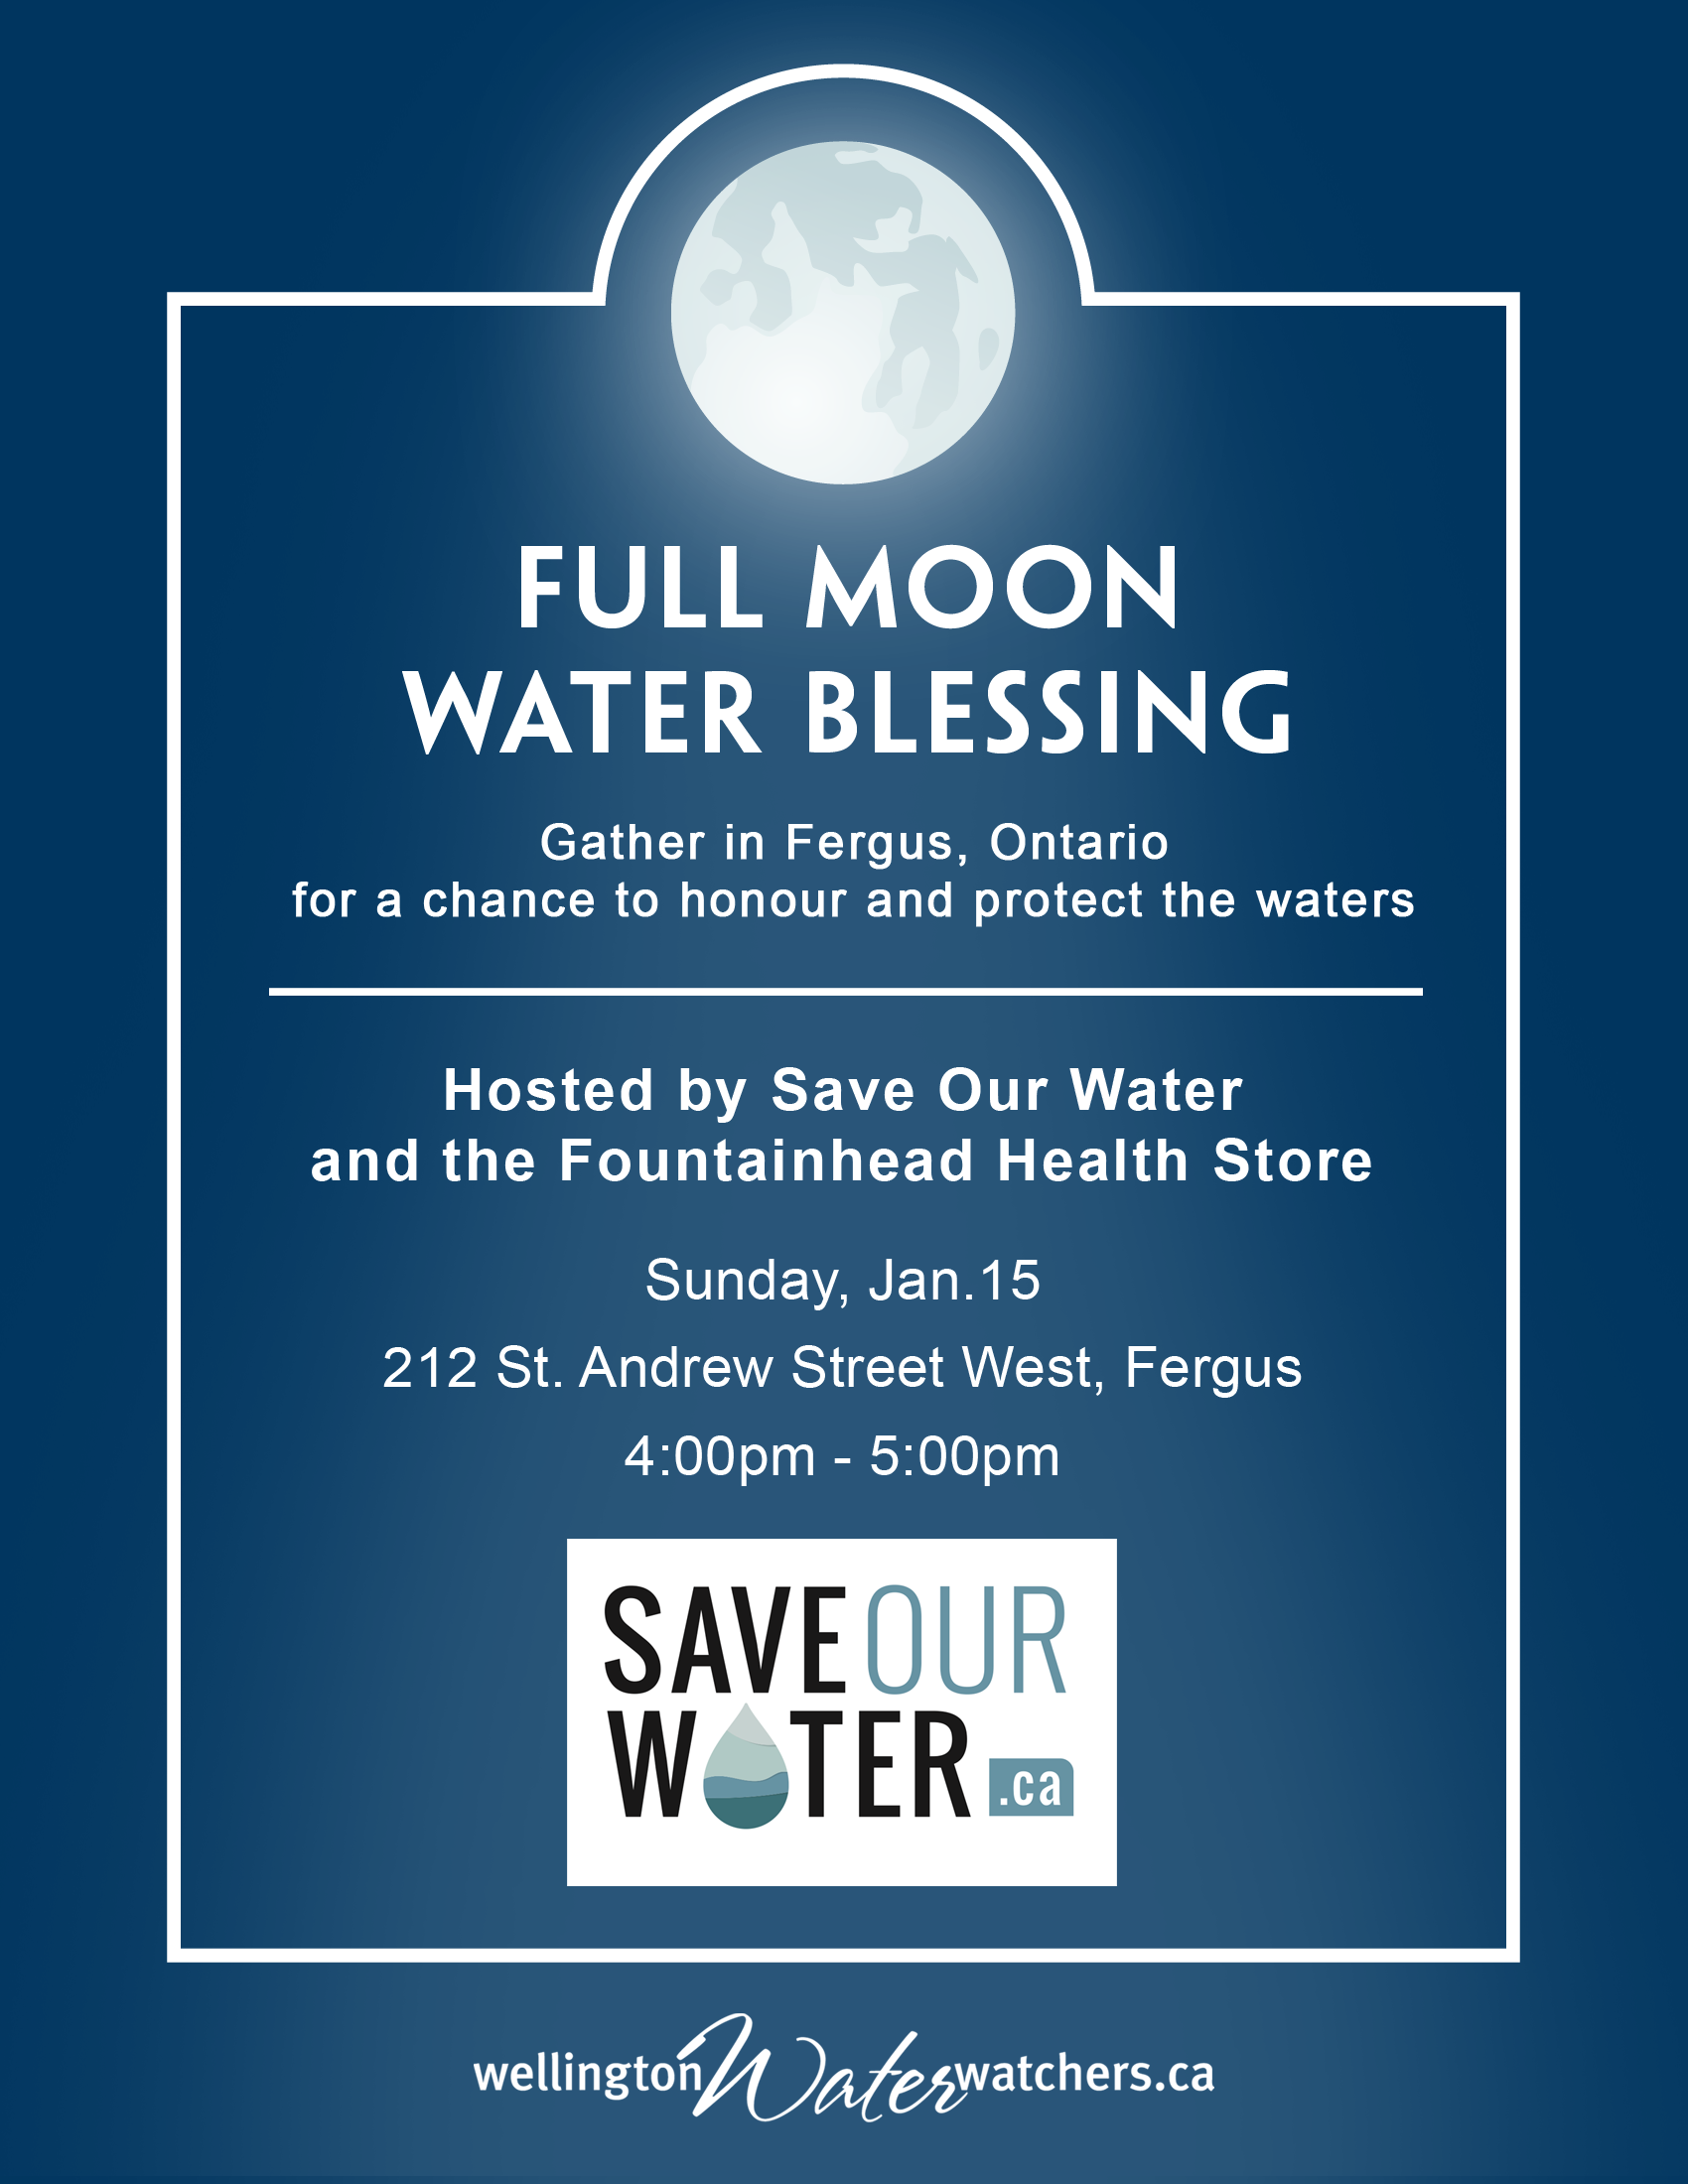 Full Moon Wate Blessing poster